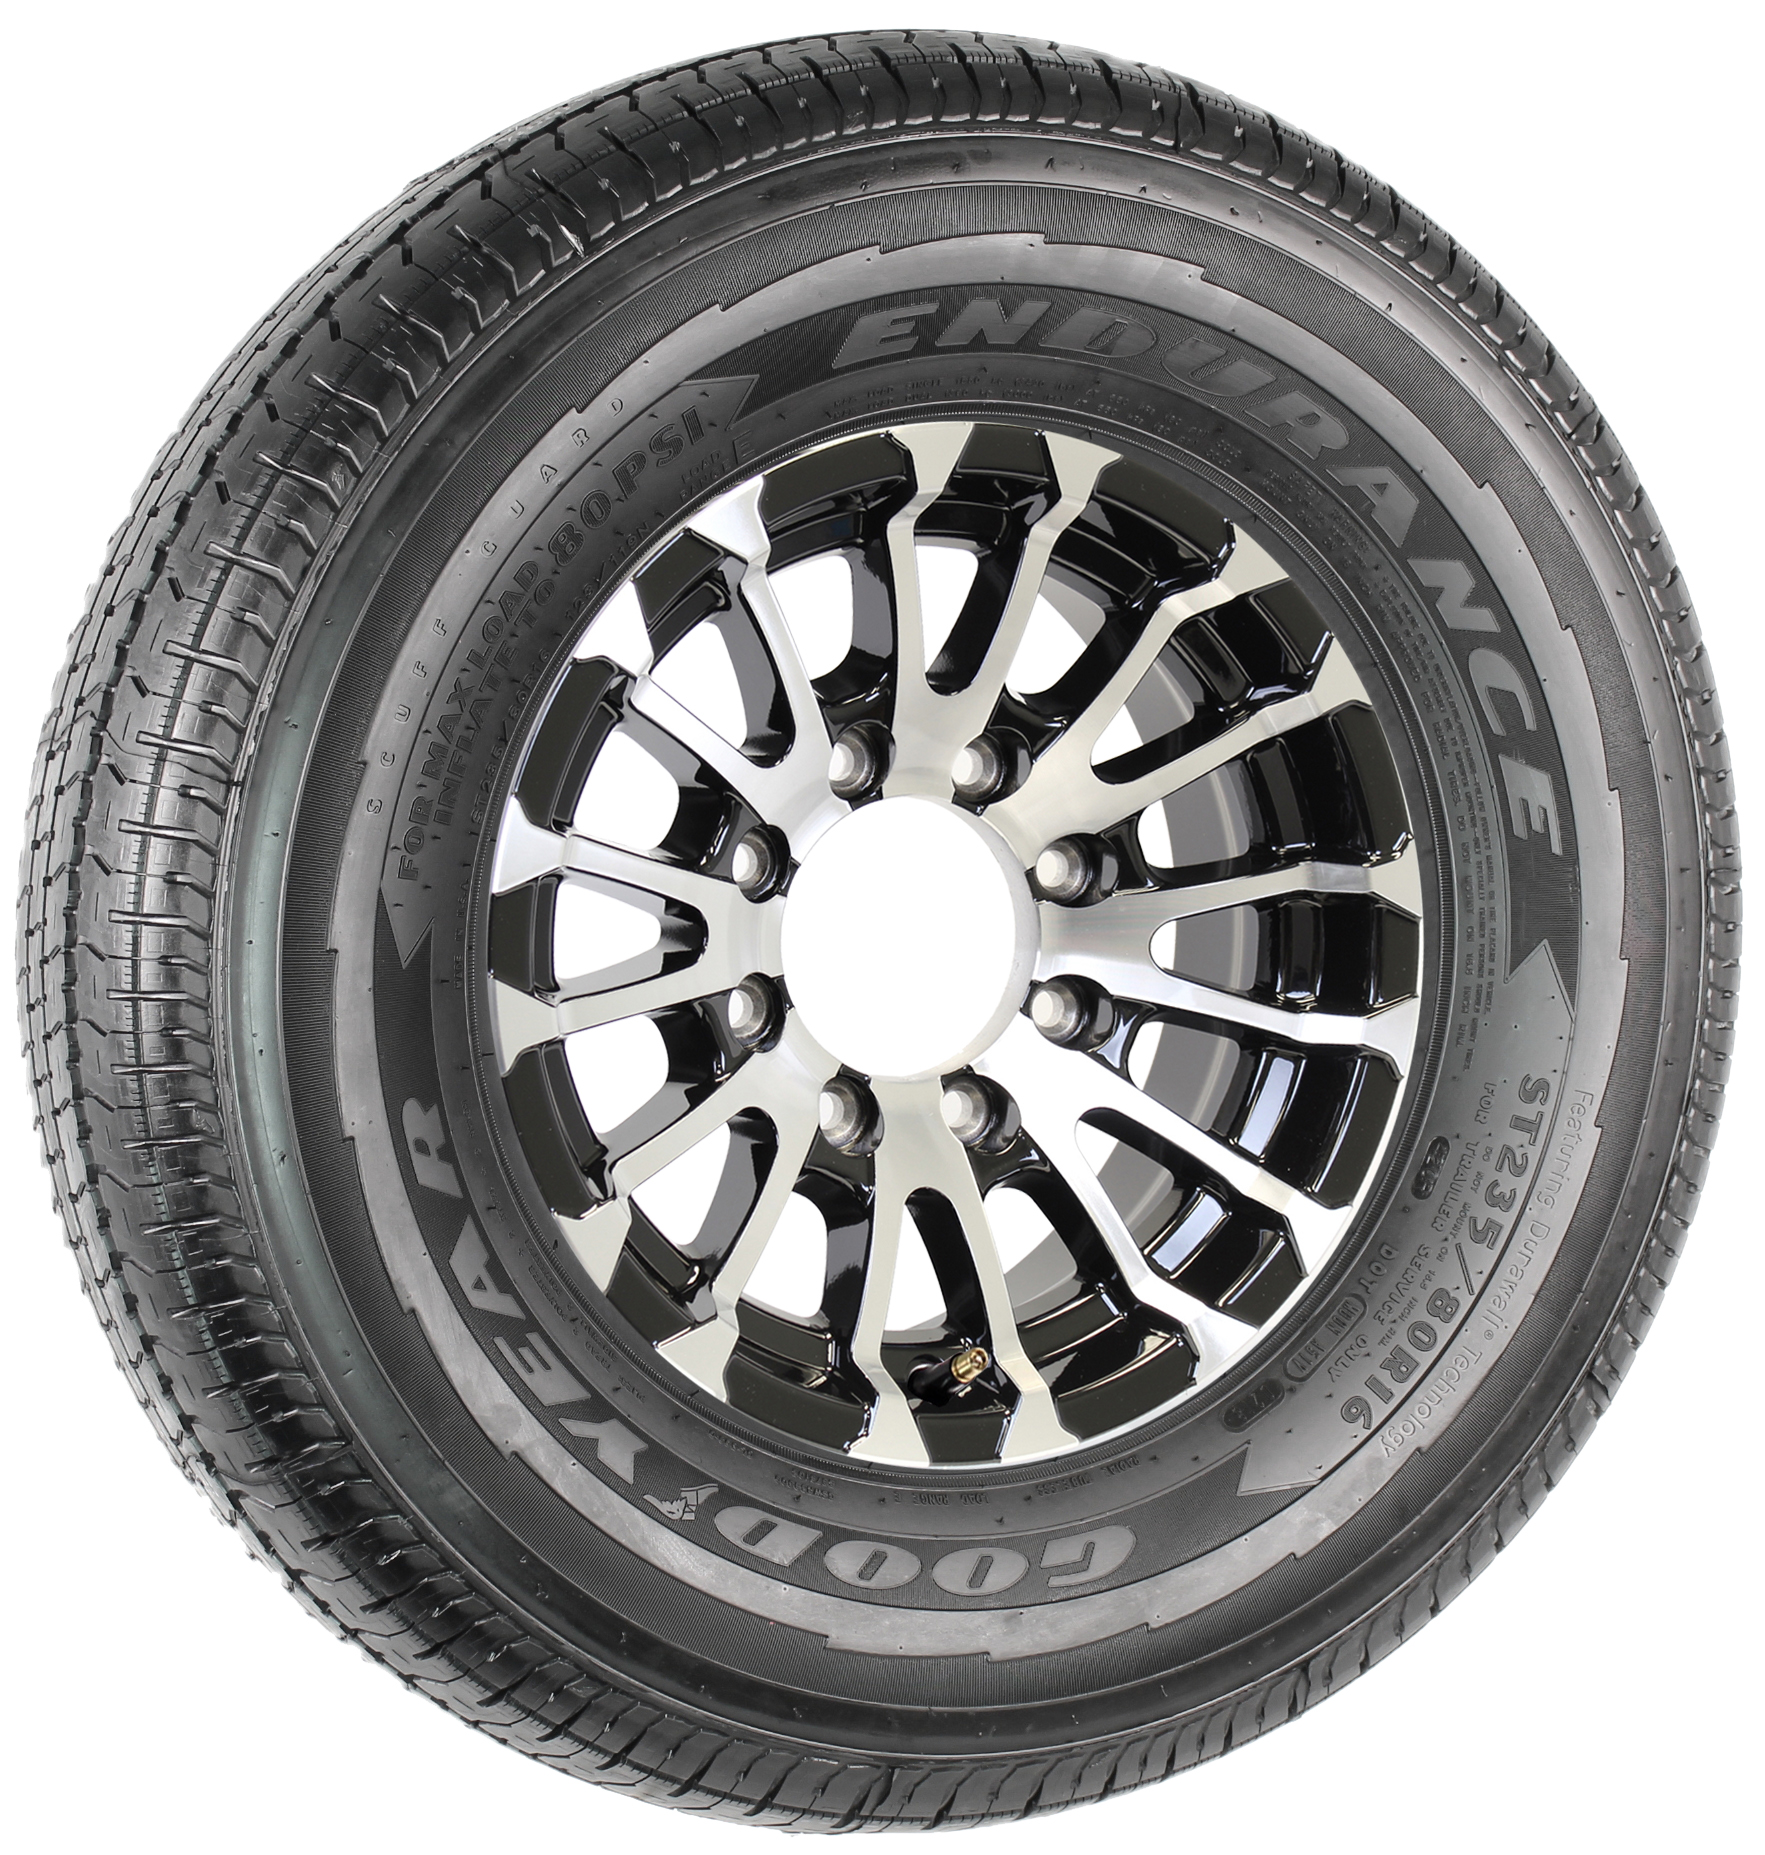 "Goodyear Endurance ST235/80R16 LRE Radial Tire on 16"" 8-Lug Avalanche Black Aluminum Assembly Image"